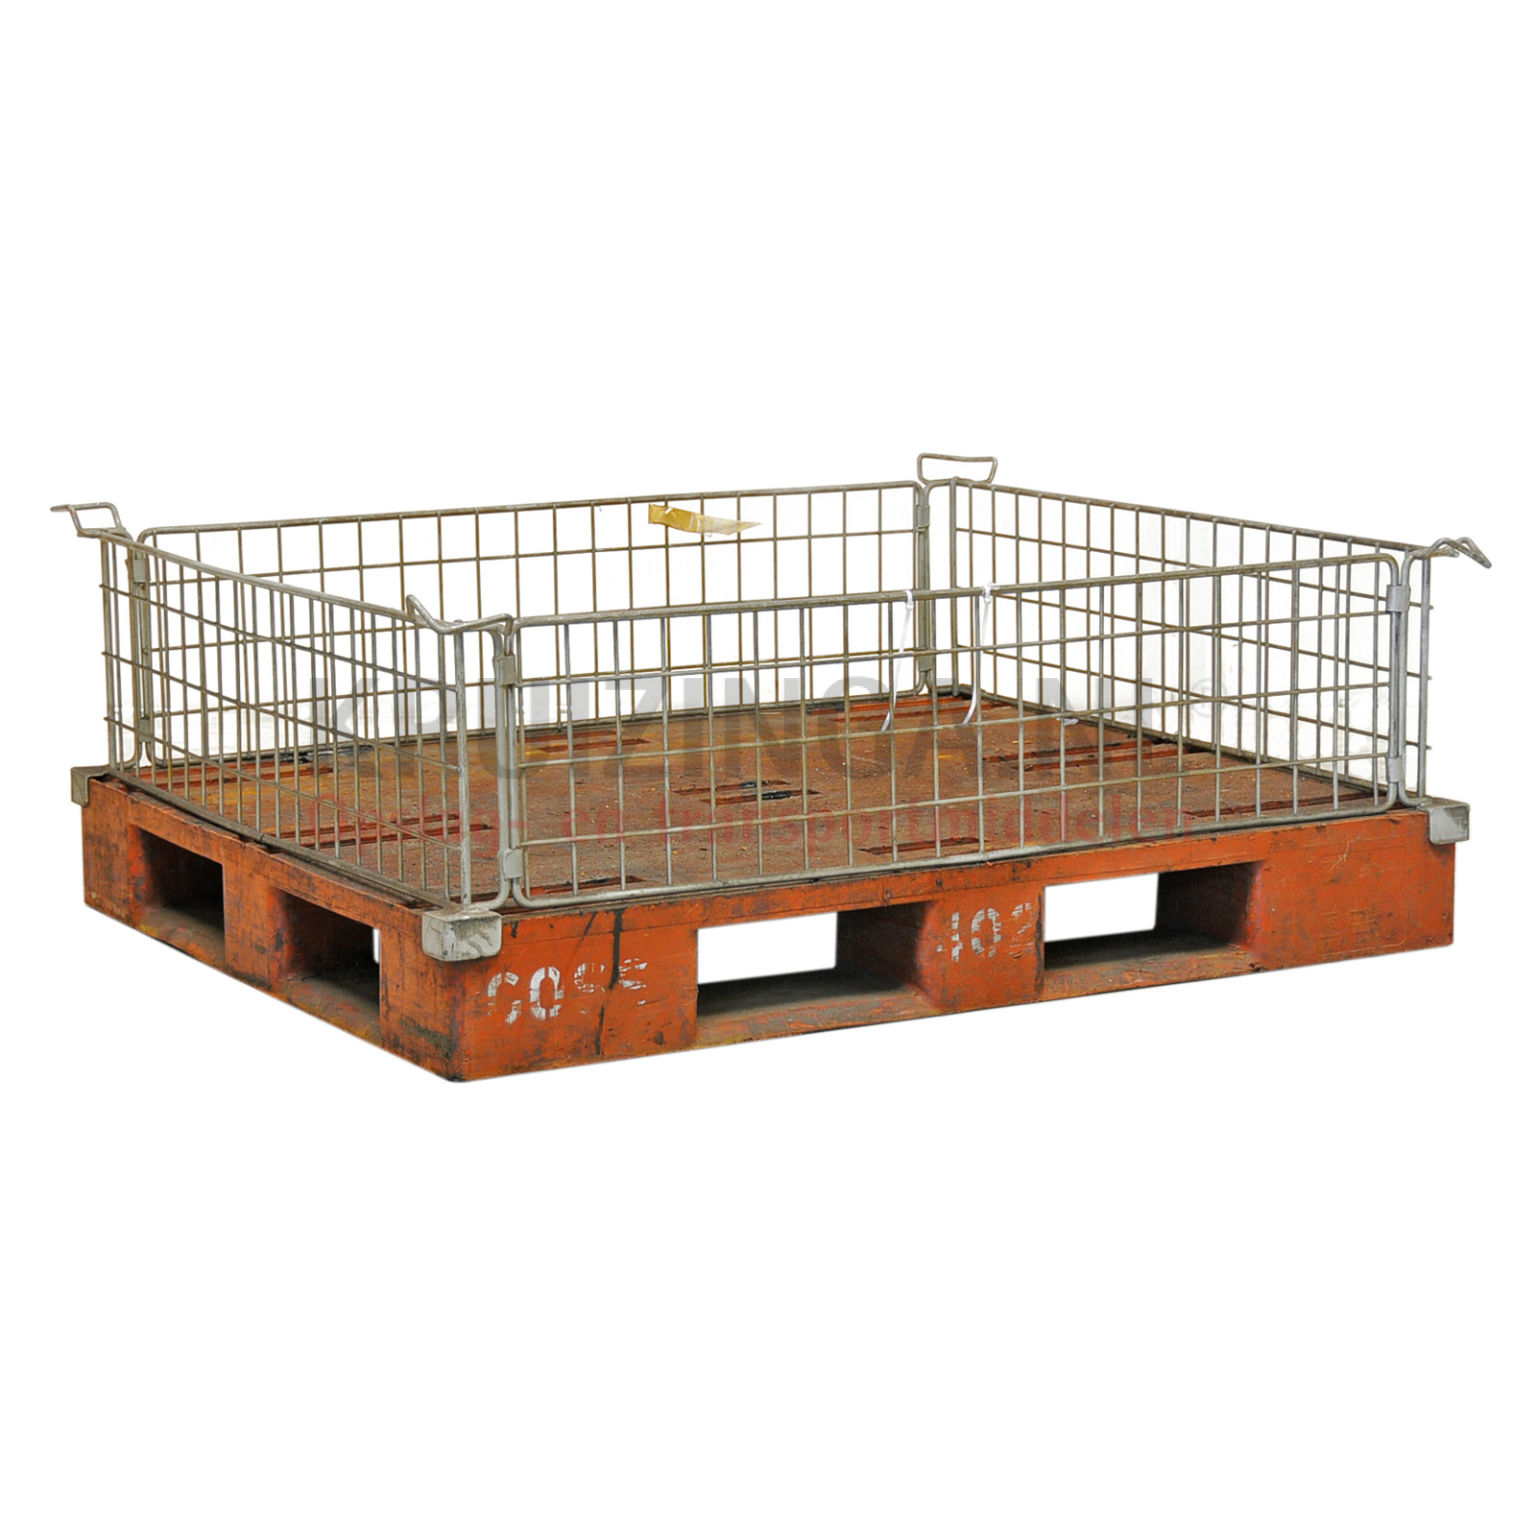 Pallet Stacking Frames Stackable Pallet Included Used € 19